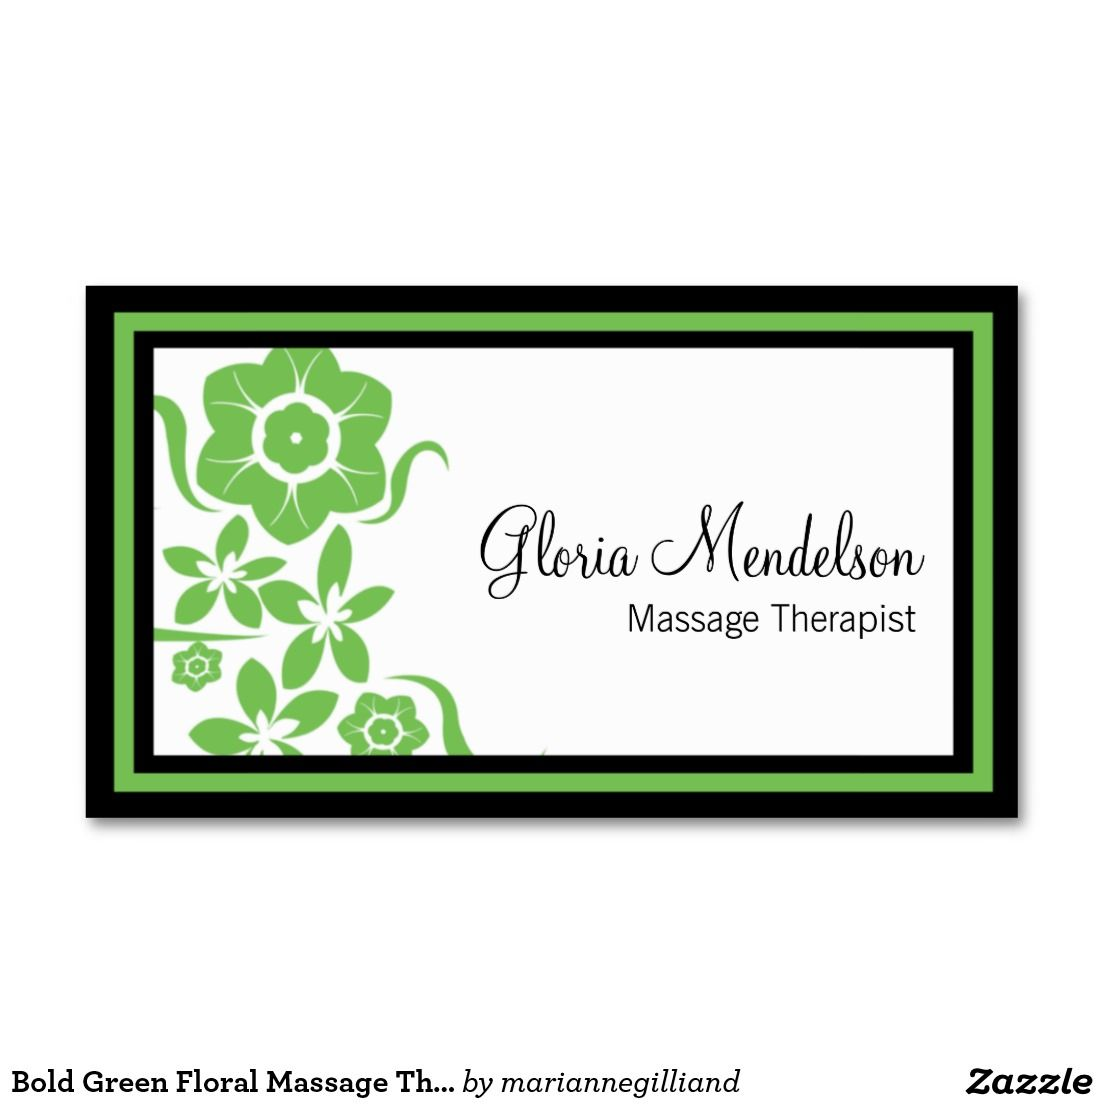 Bold Green Floral Massage Therapy Business Card | Business cards ...